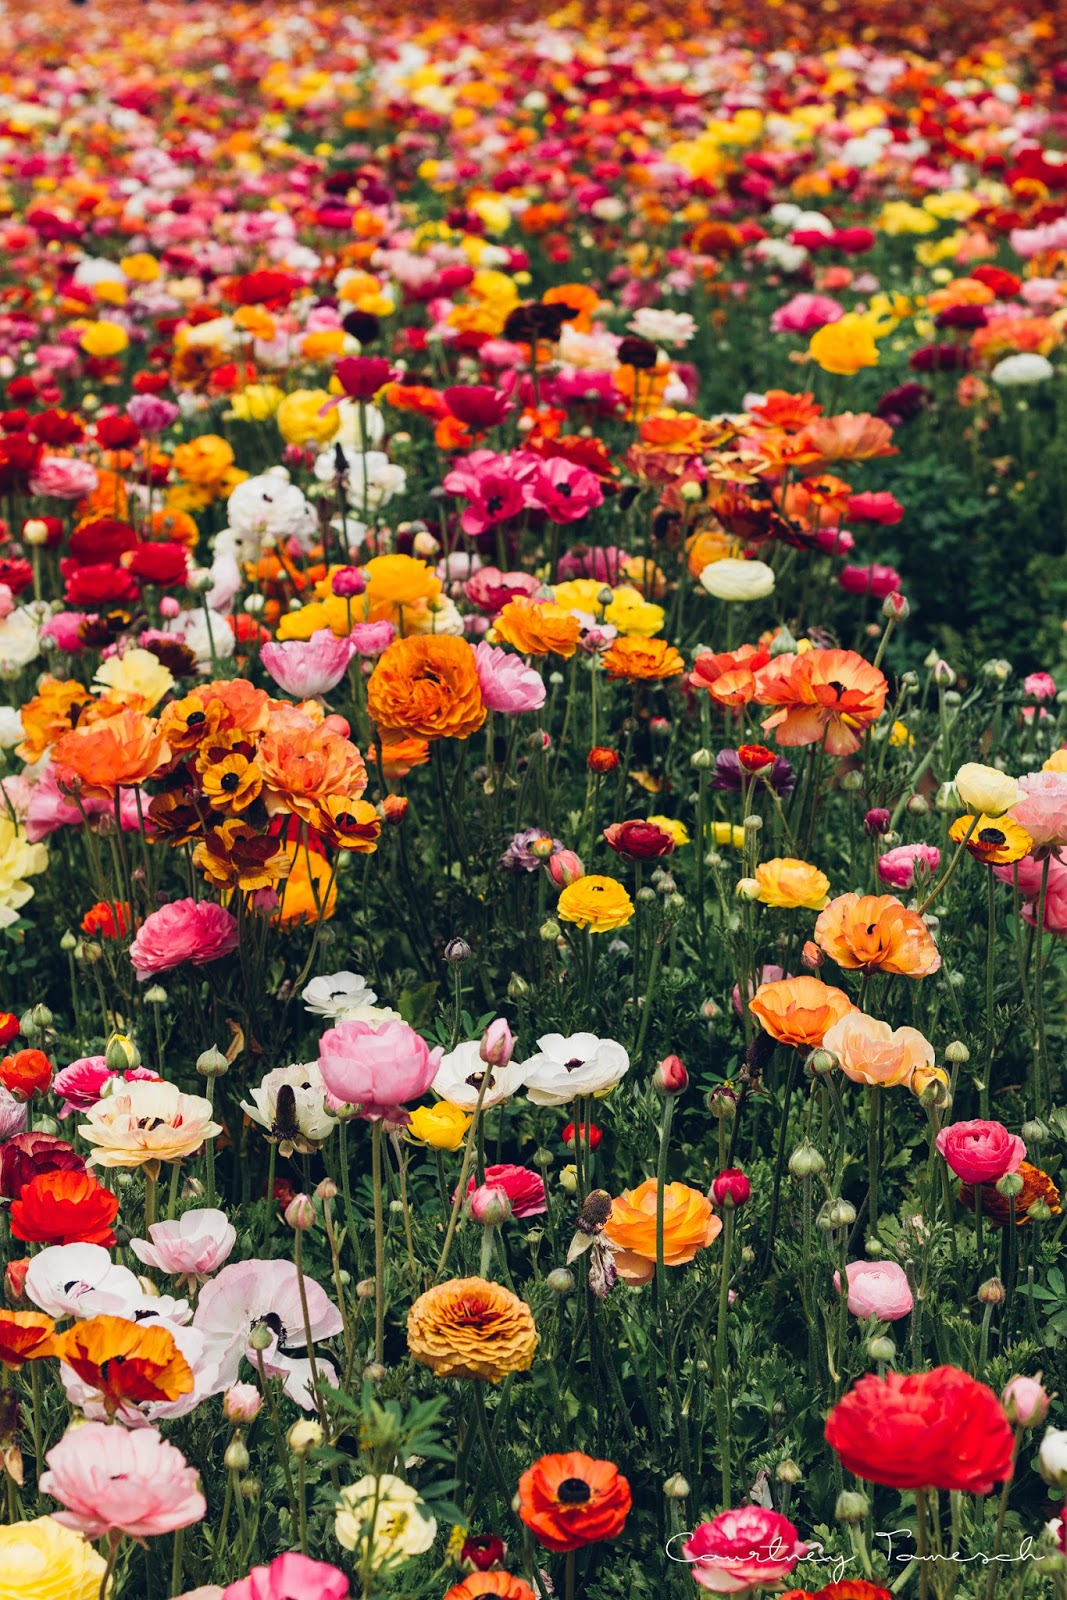 Courtney Tomesch The Flower Fields Carlsbad, CA